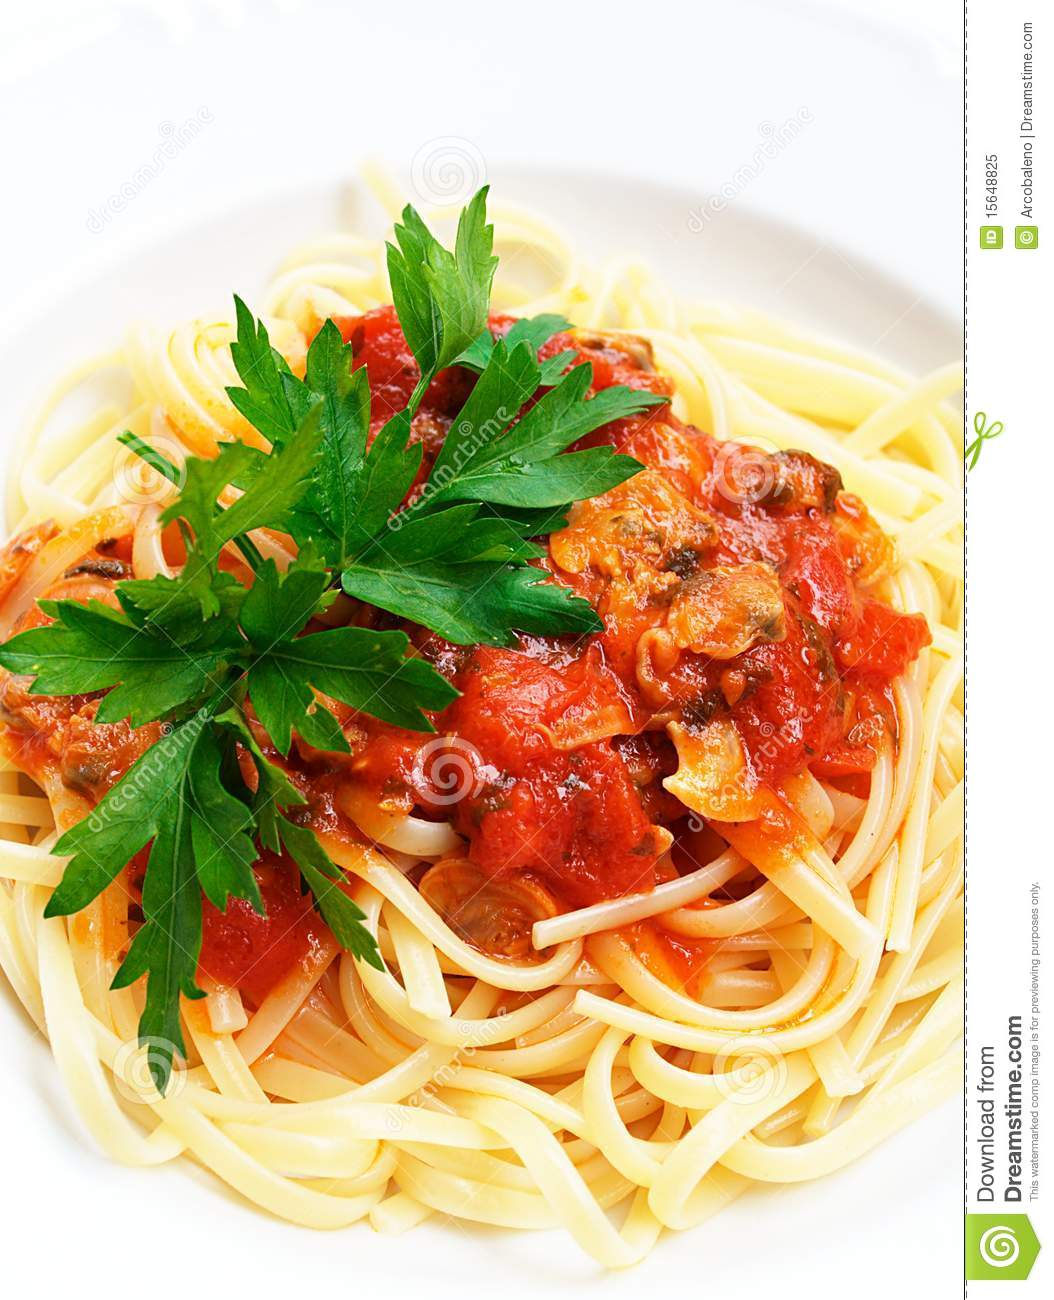 ... traditional recipe: linguine pasta with clams and tomato sauce